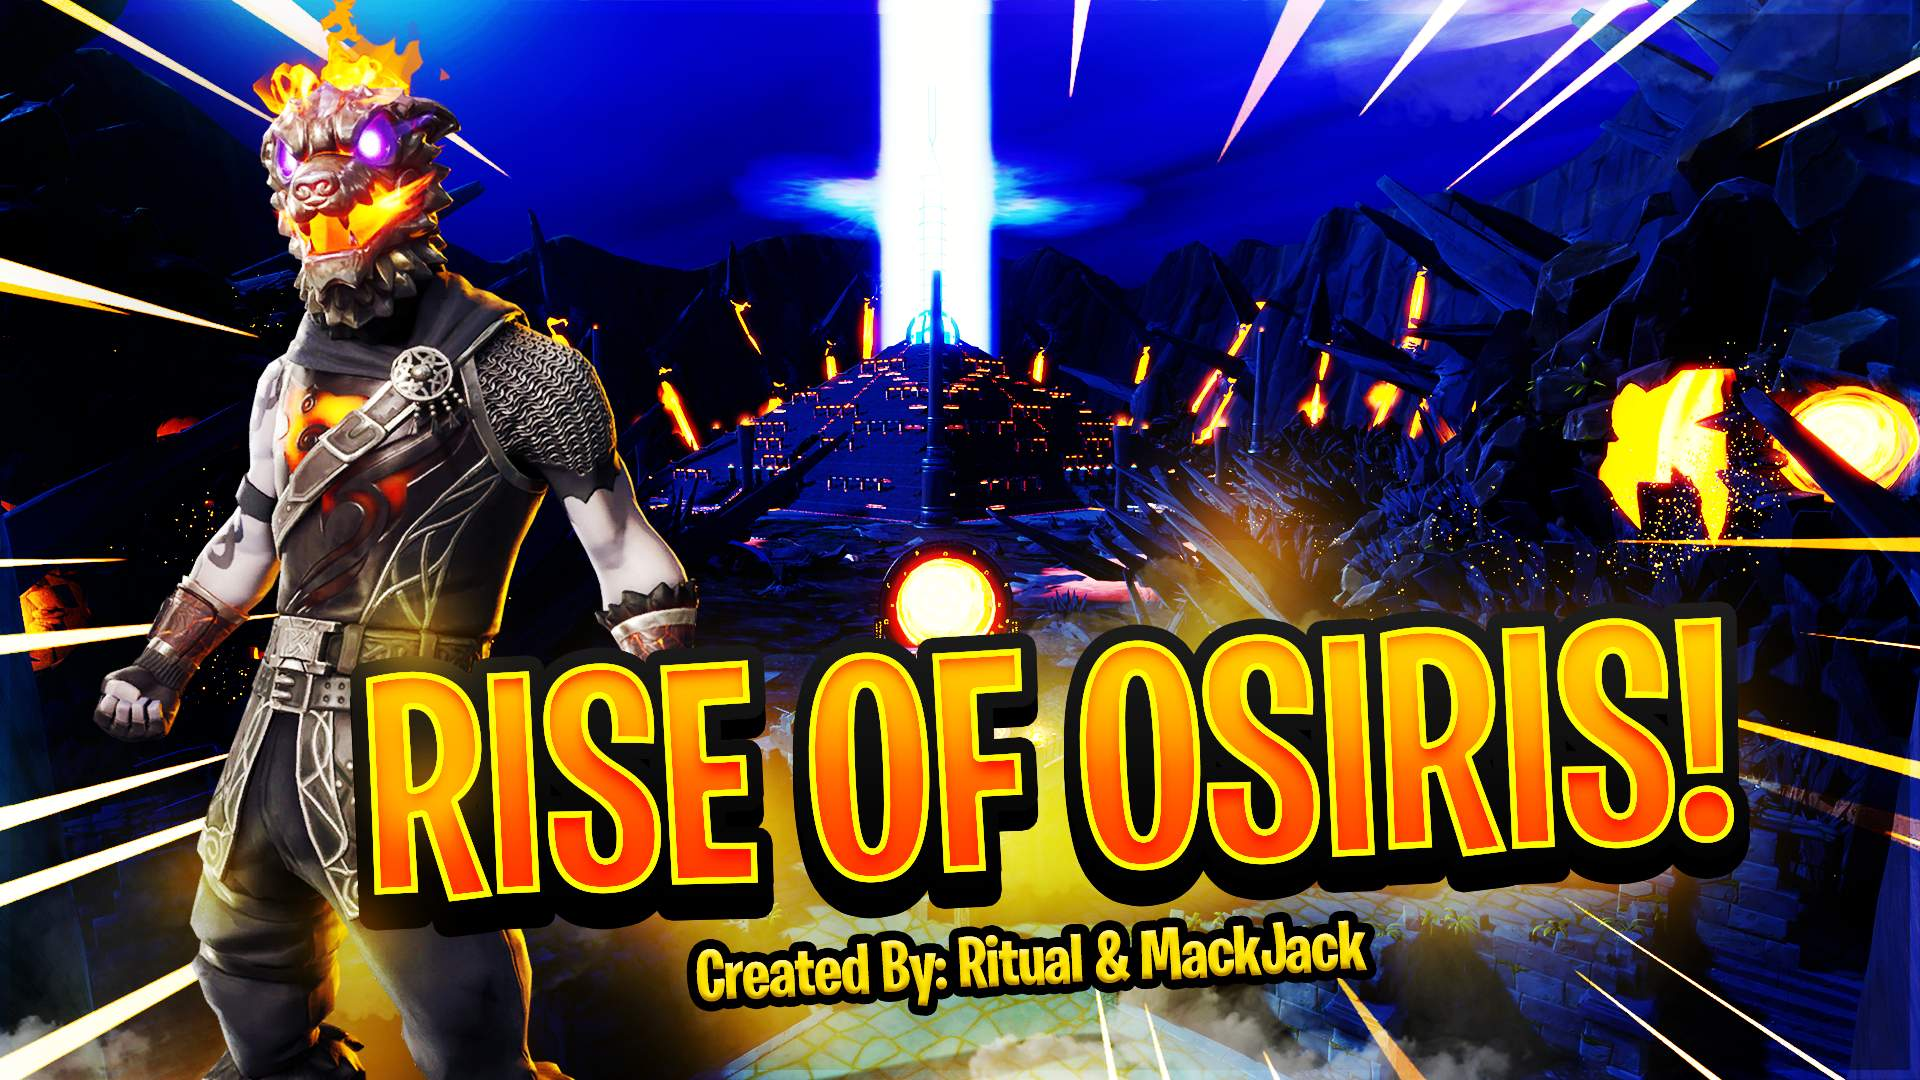 👑RISE OF OSIRIS - KING OF THE HILL👑